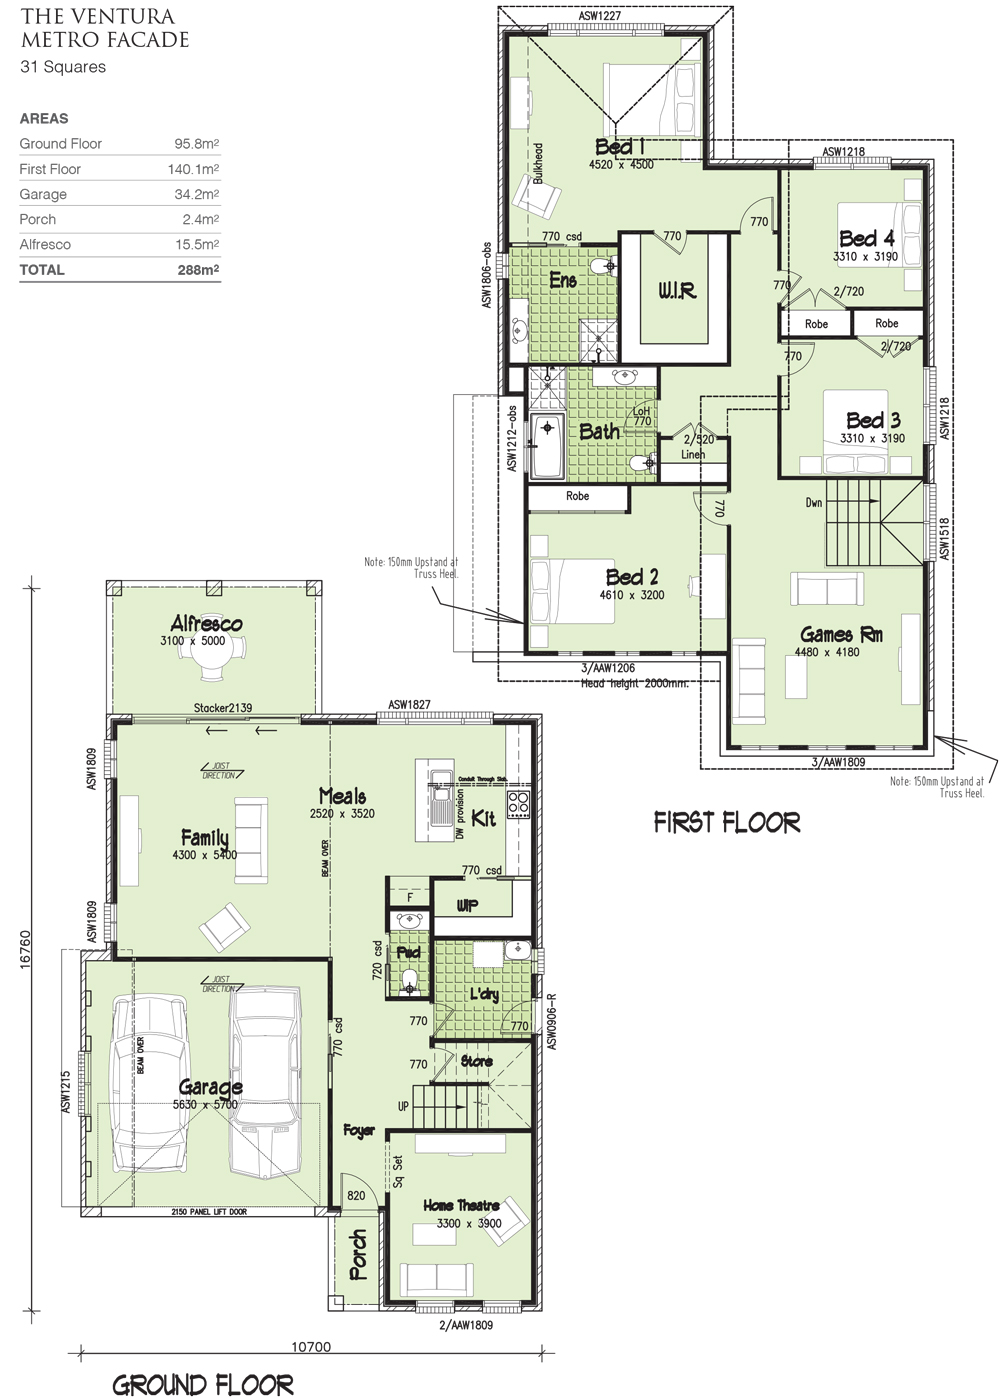 Ventura Double storey 31 Squares, Home Design, Tullipan Homes